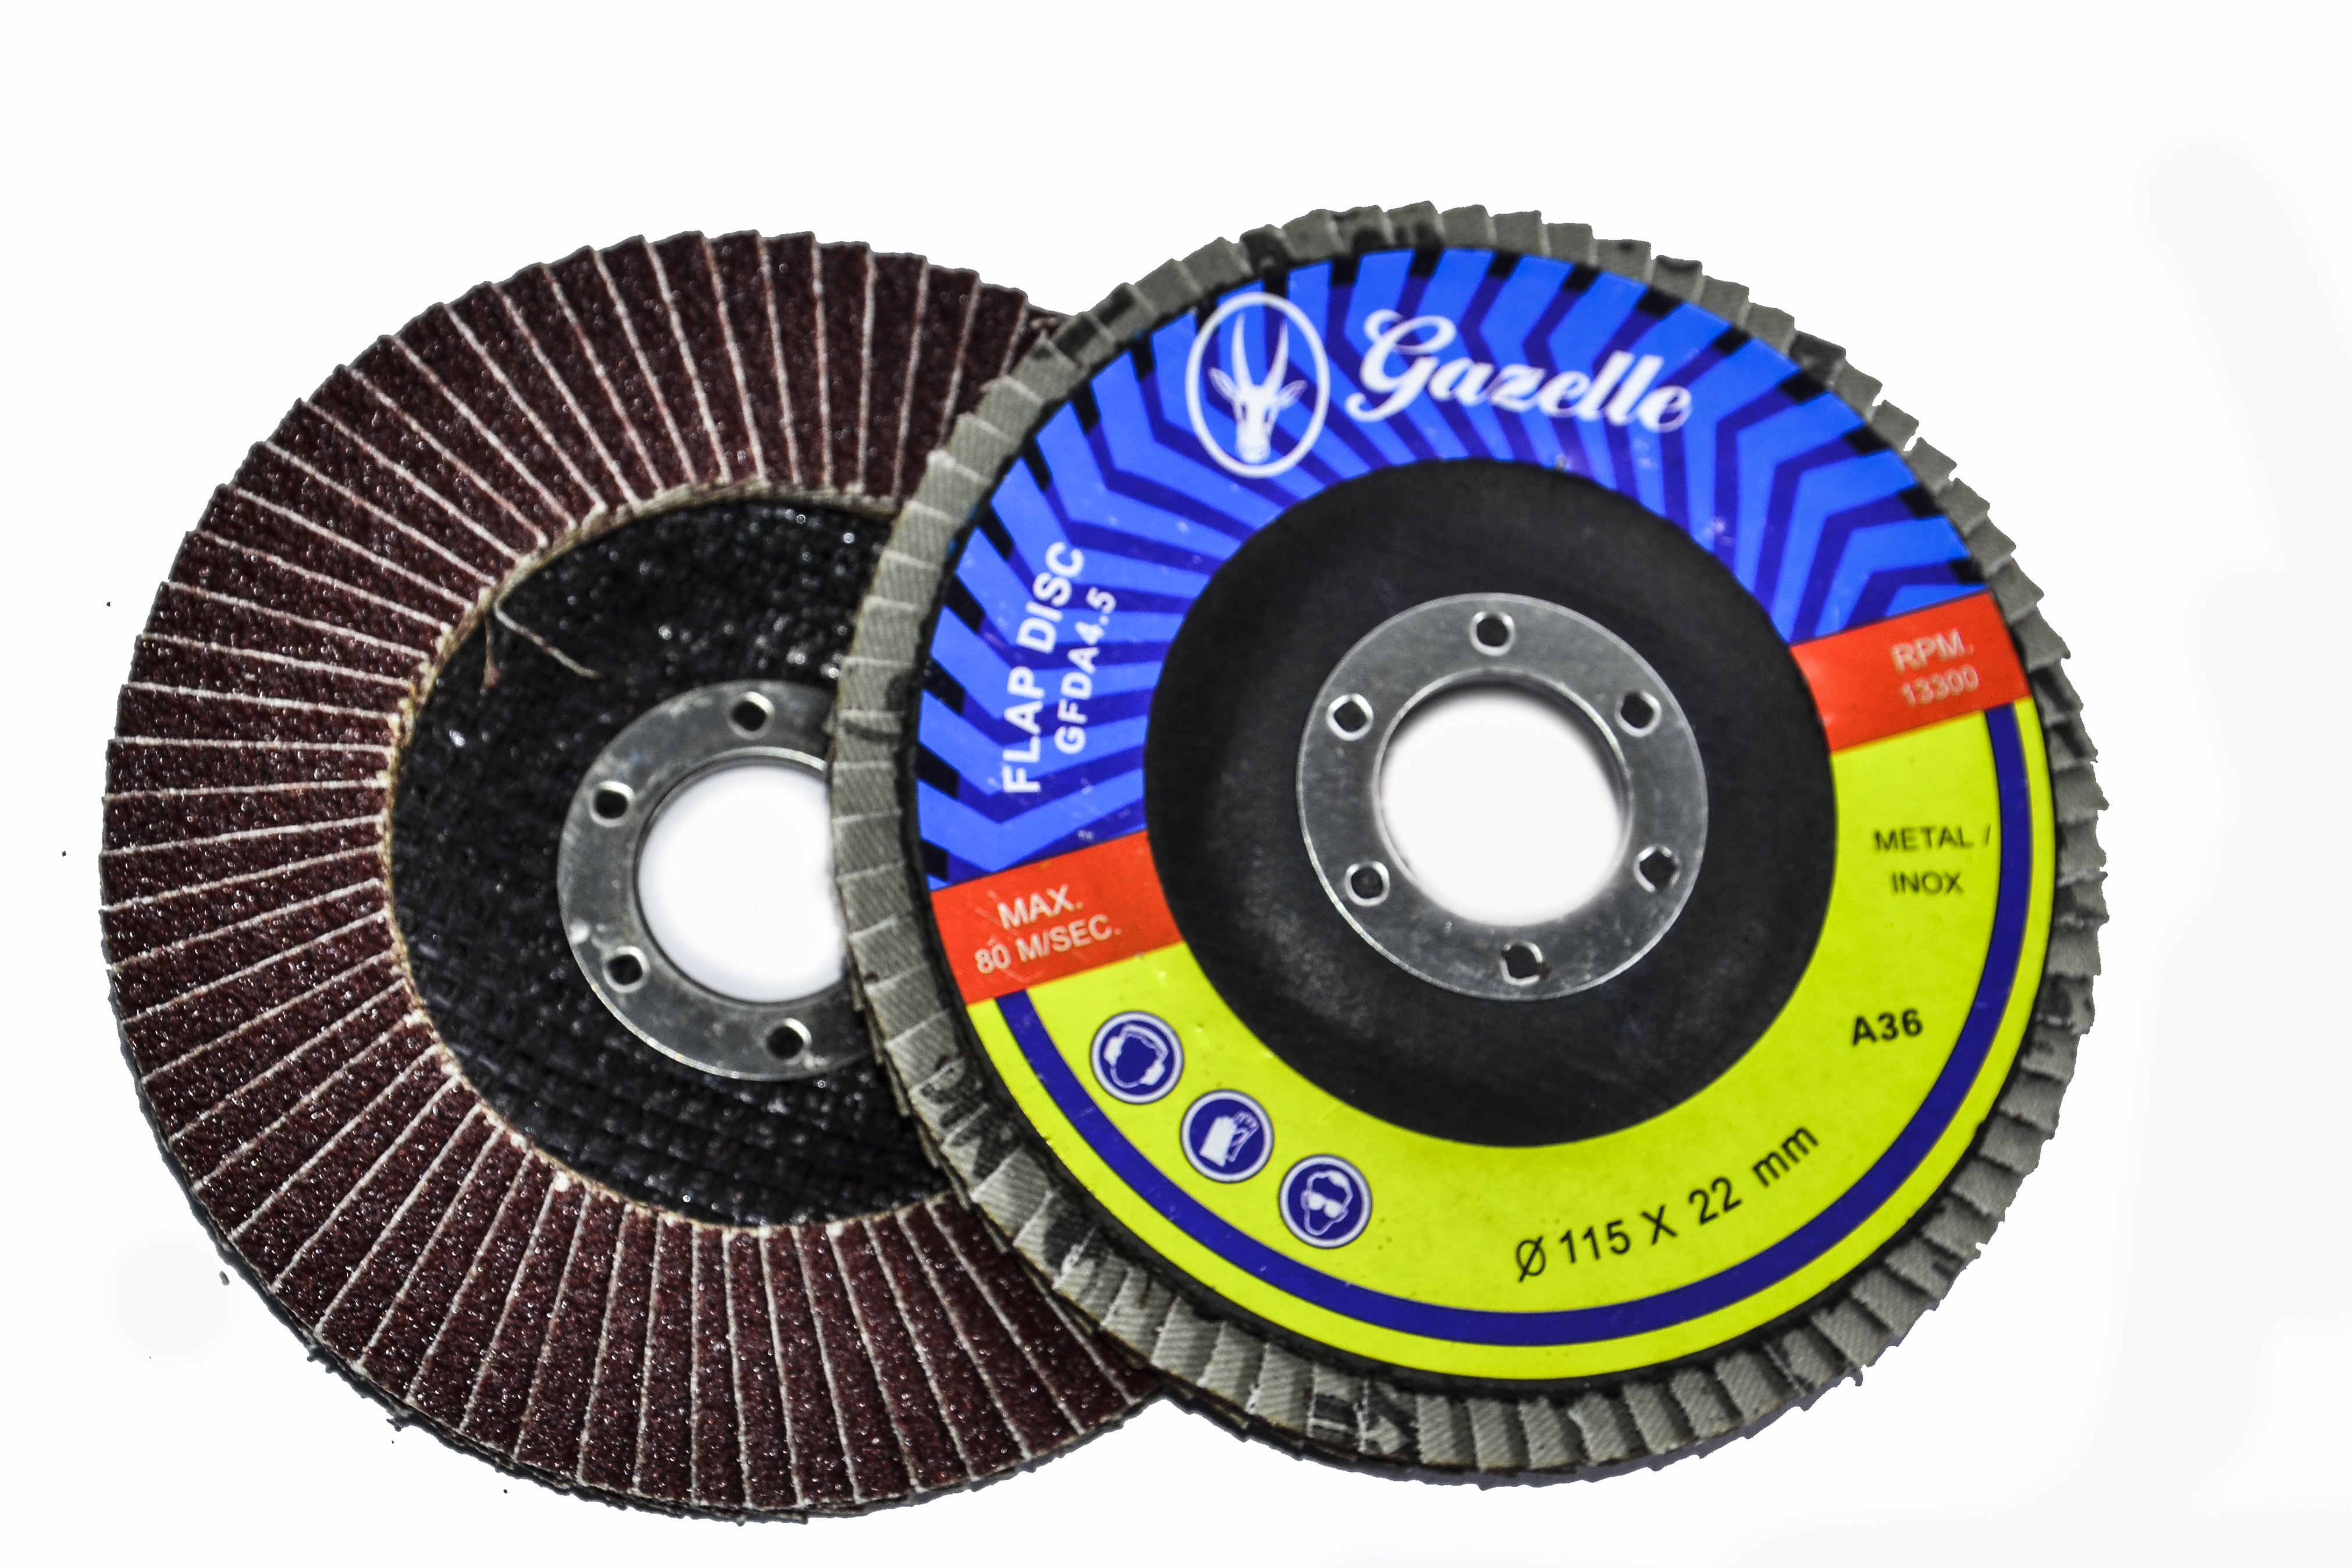 GAZELLE GFDA436G - Flap Disc 4in – 100mm x 36Grit Aluminium Oxide